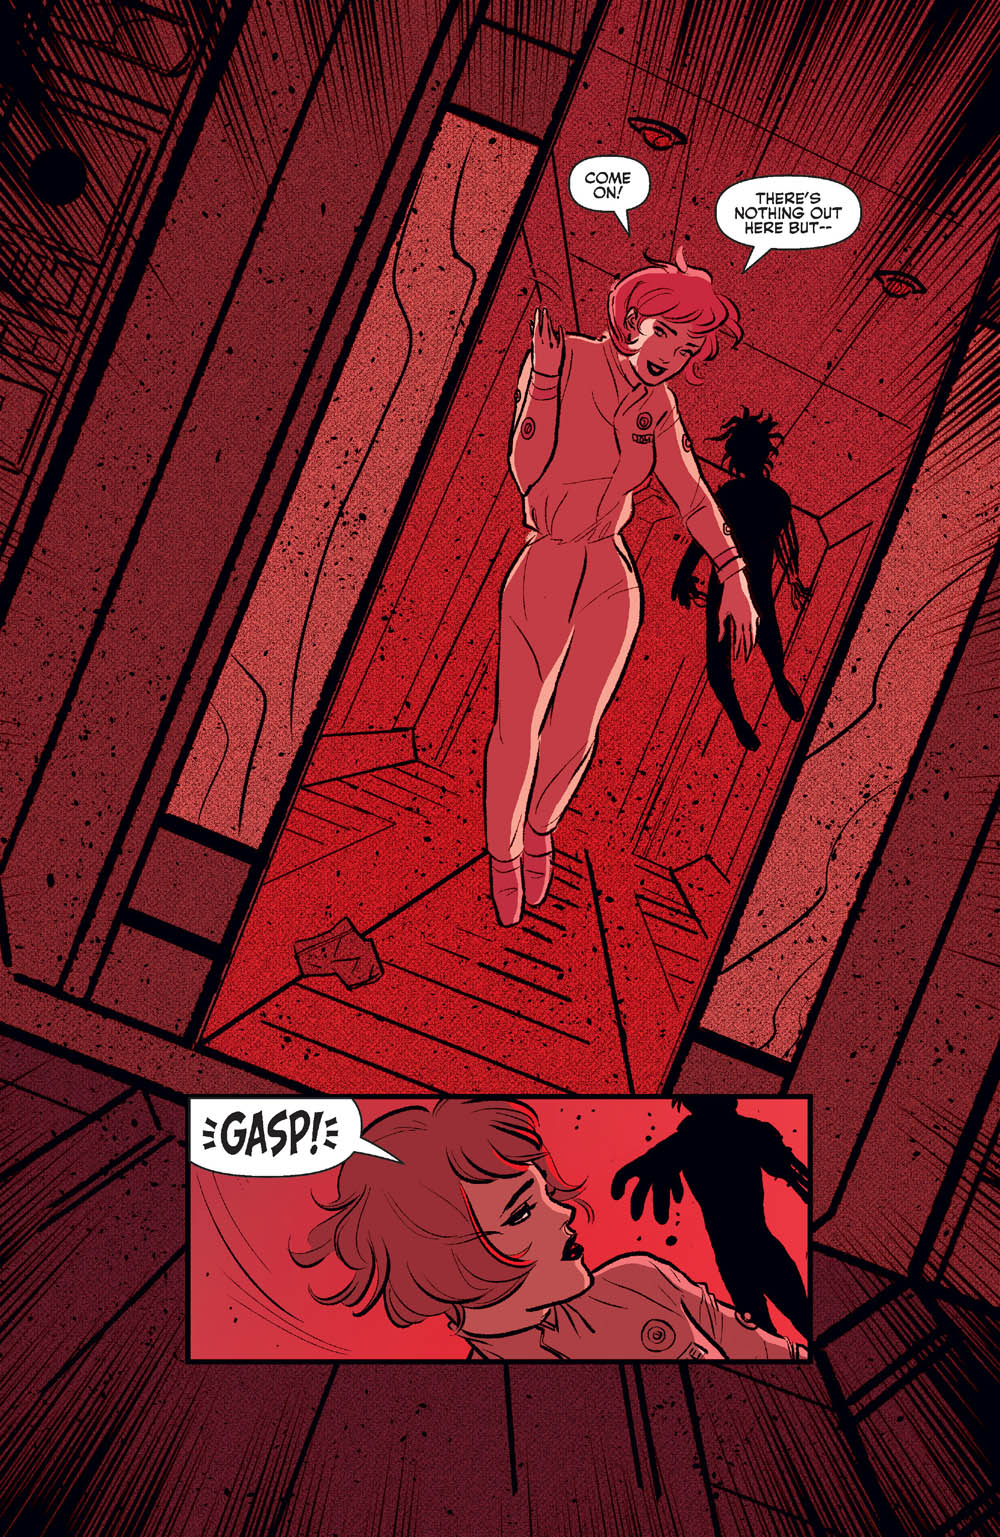 Someone floats by and scared Josie as they leave the room in Josie and the Pussycats #2.